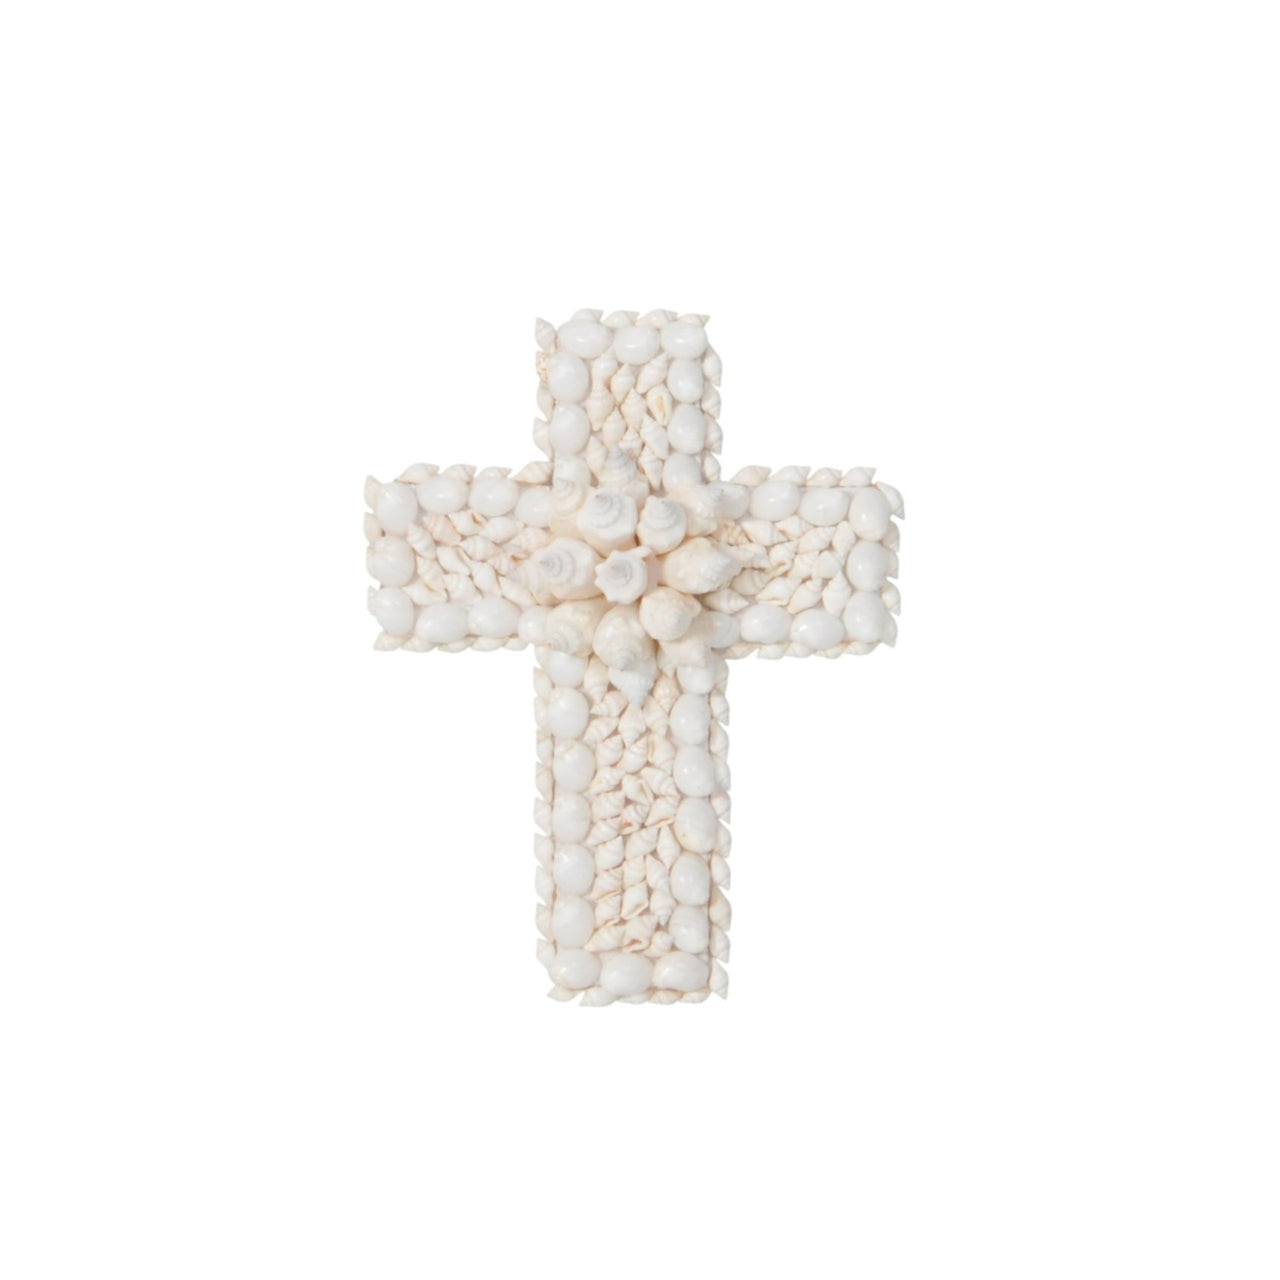 Maui Shell Cross